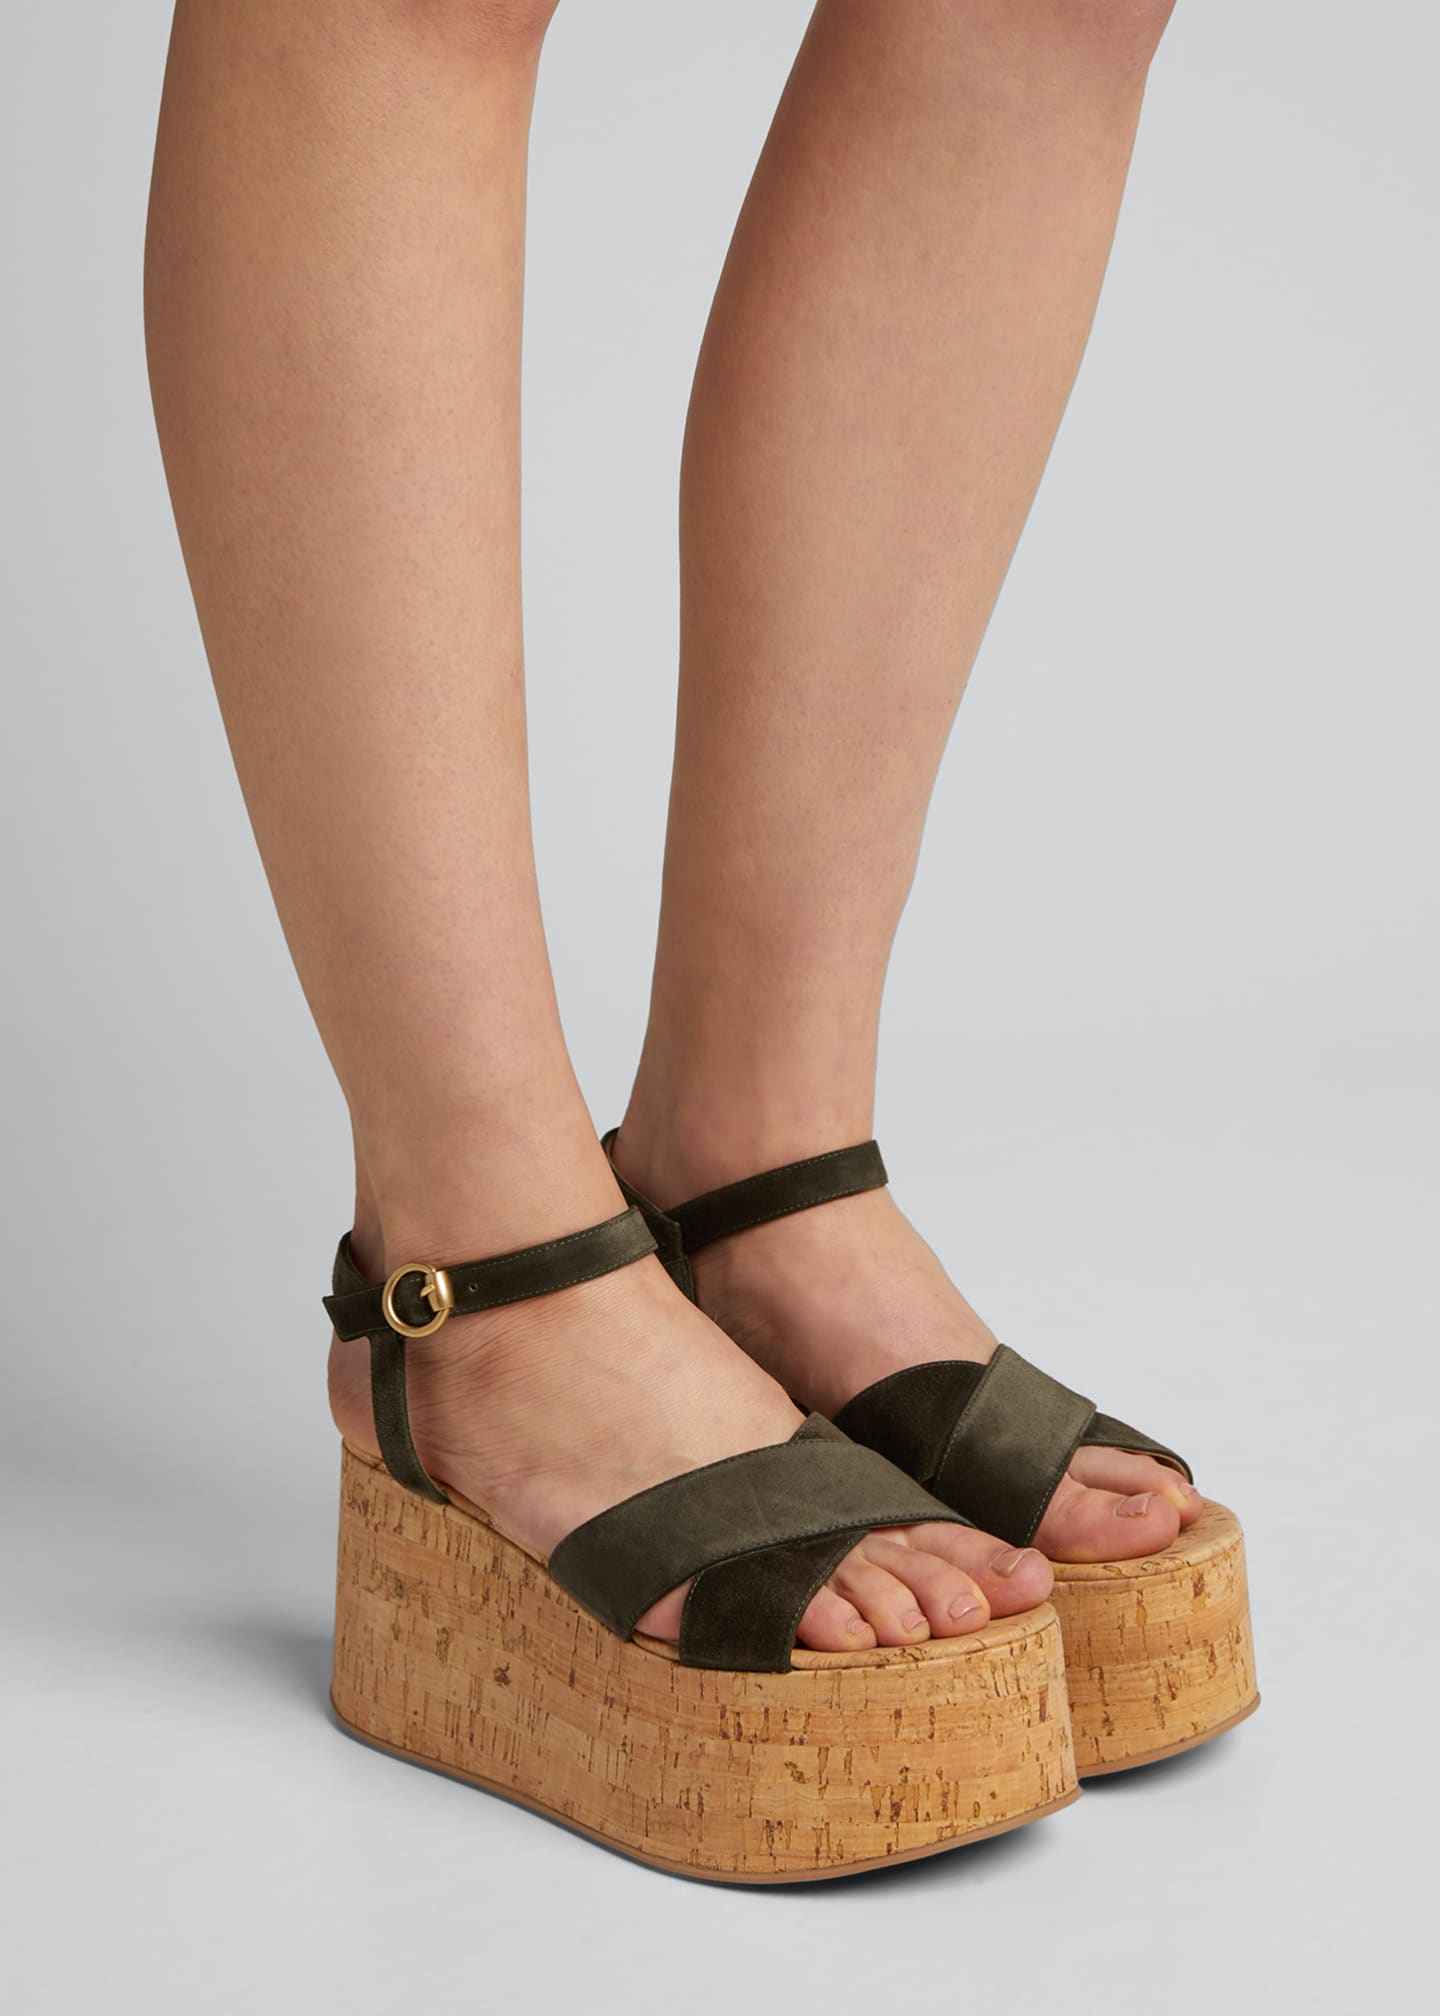 Image 2 of 5: 20mm Cork Flatform with Suede Sandals